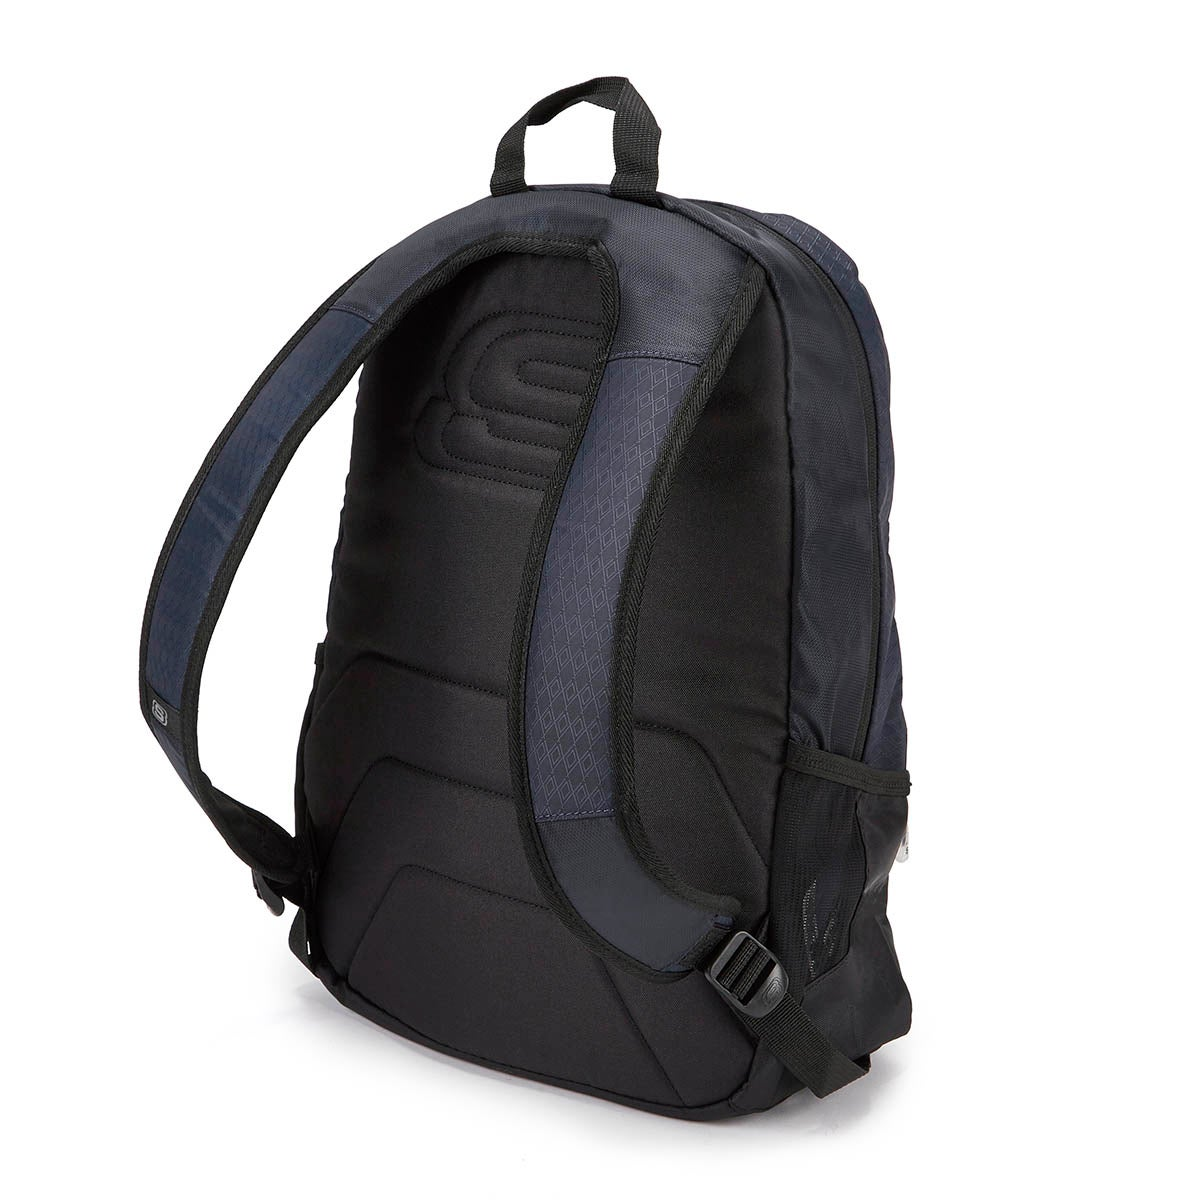 Bys Speedway Overdrive nvy/blk backpack